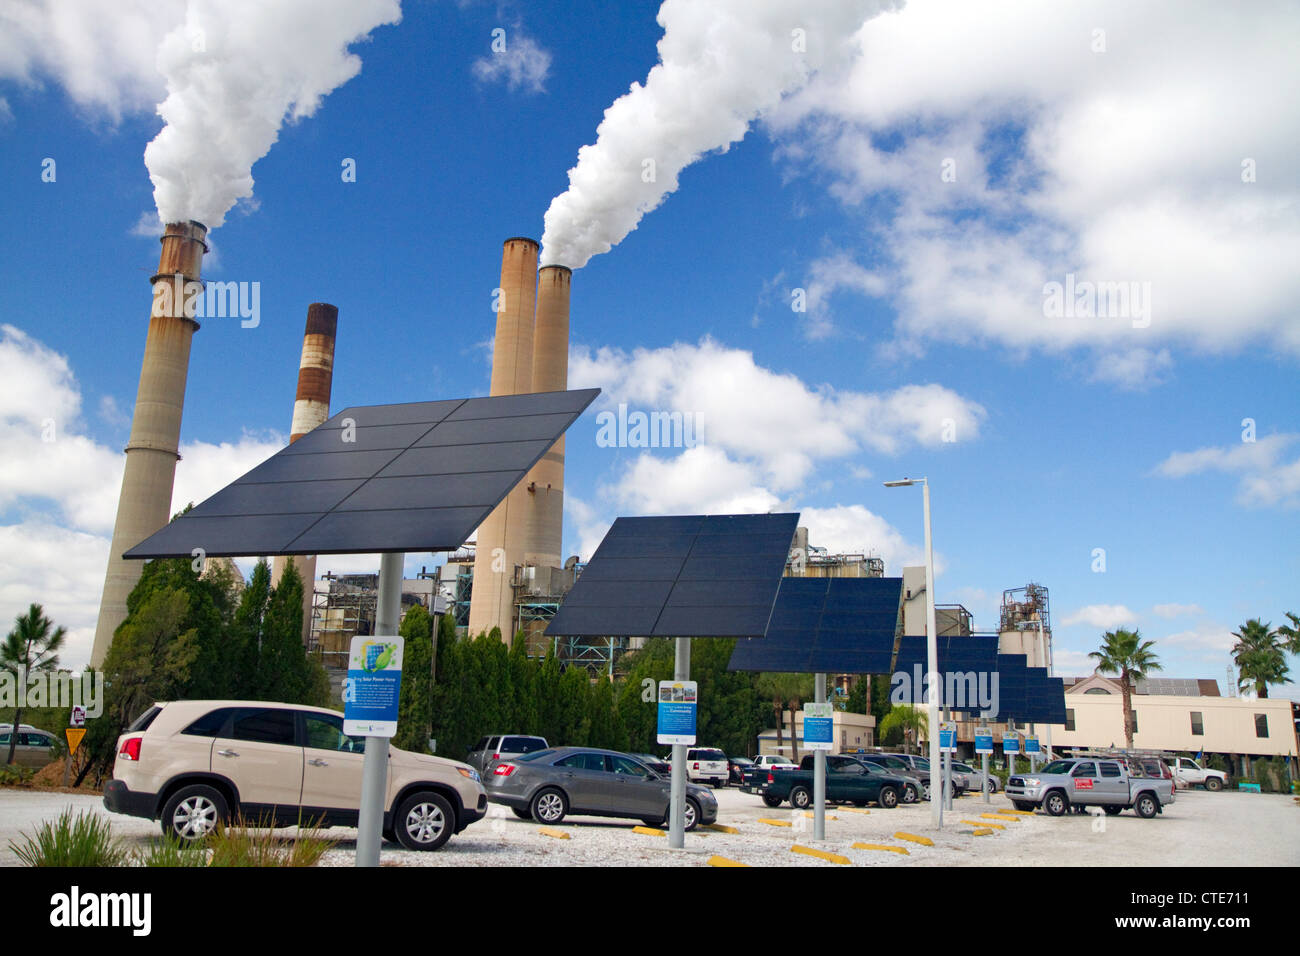 Photovoltaic installation at the TECO Tampa Electric Big Bend Power Station located in Apollo Beach, Florida, USA. - Stock Image